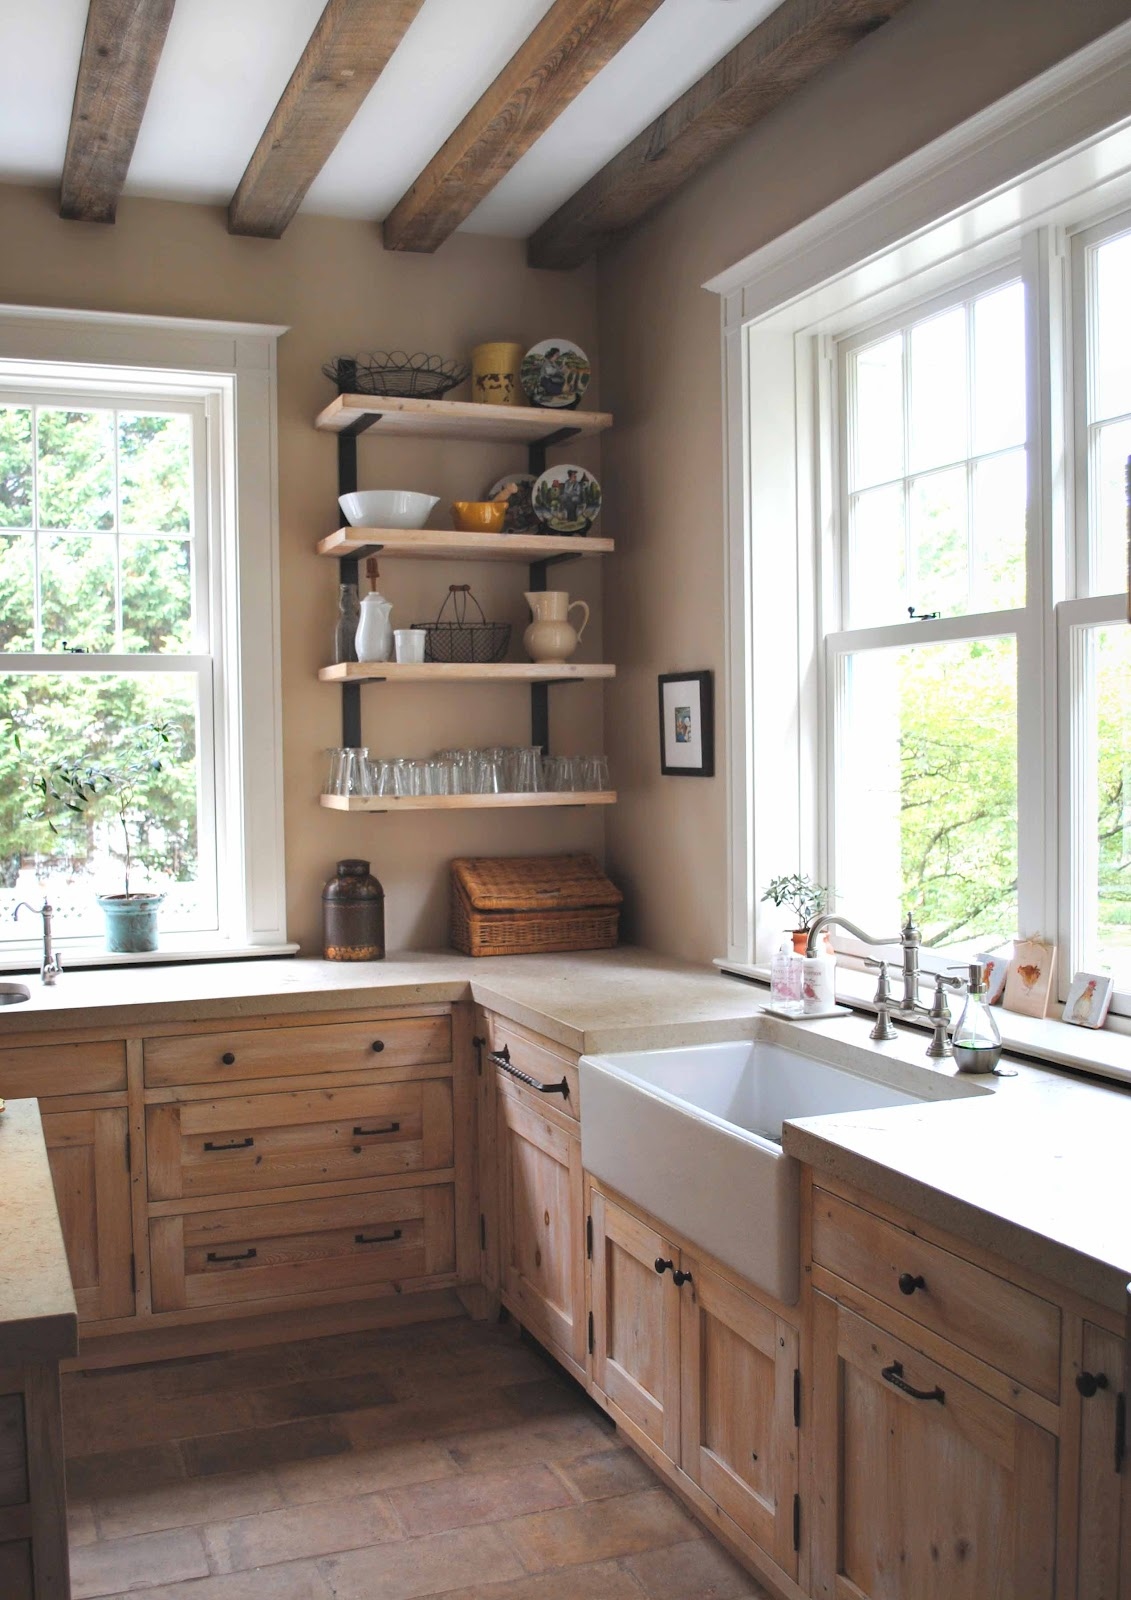 Interior & Garden Design: Old And New In